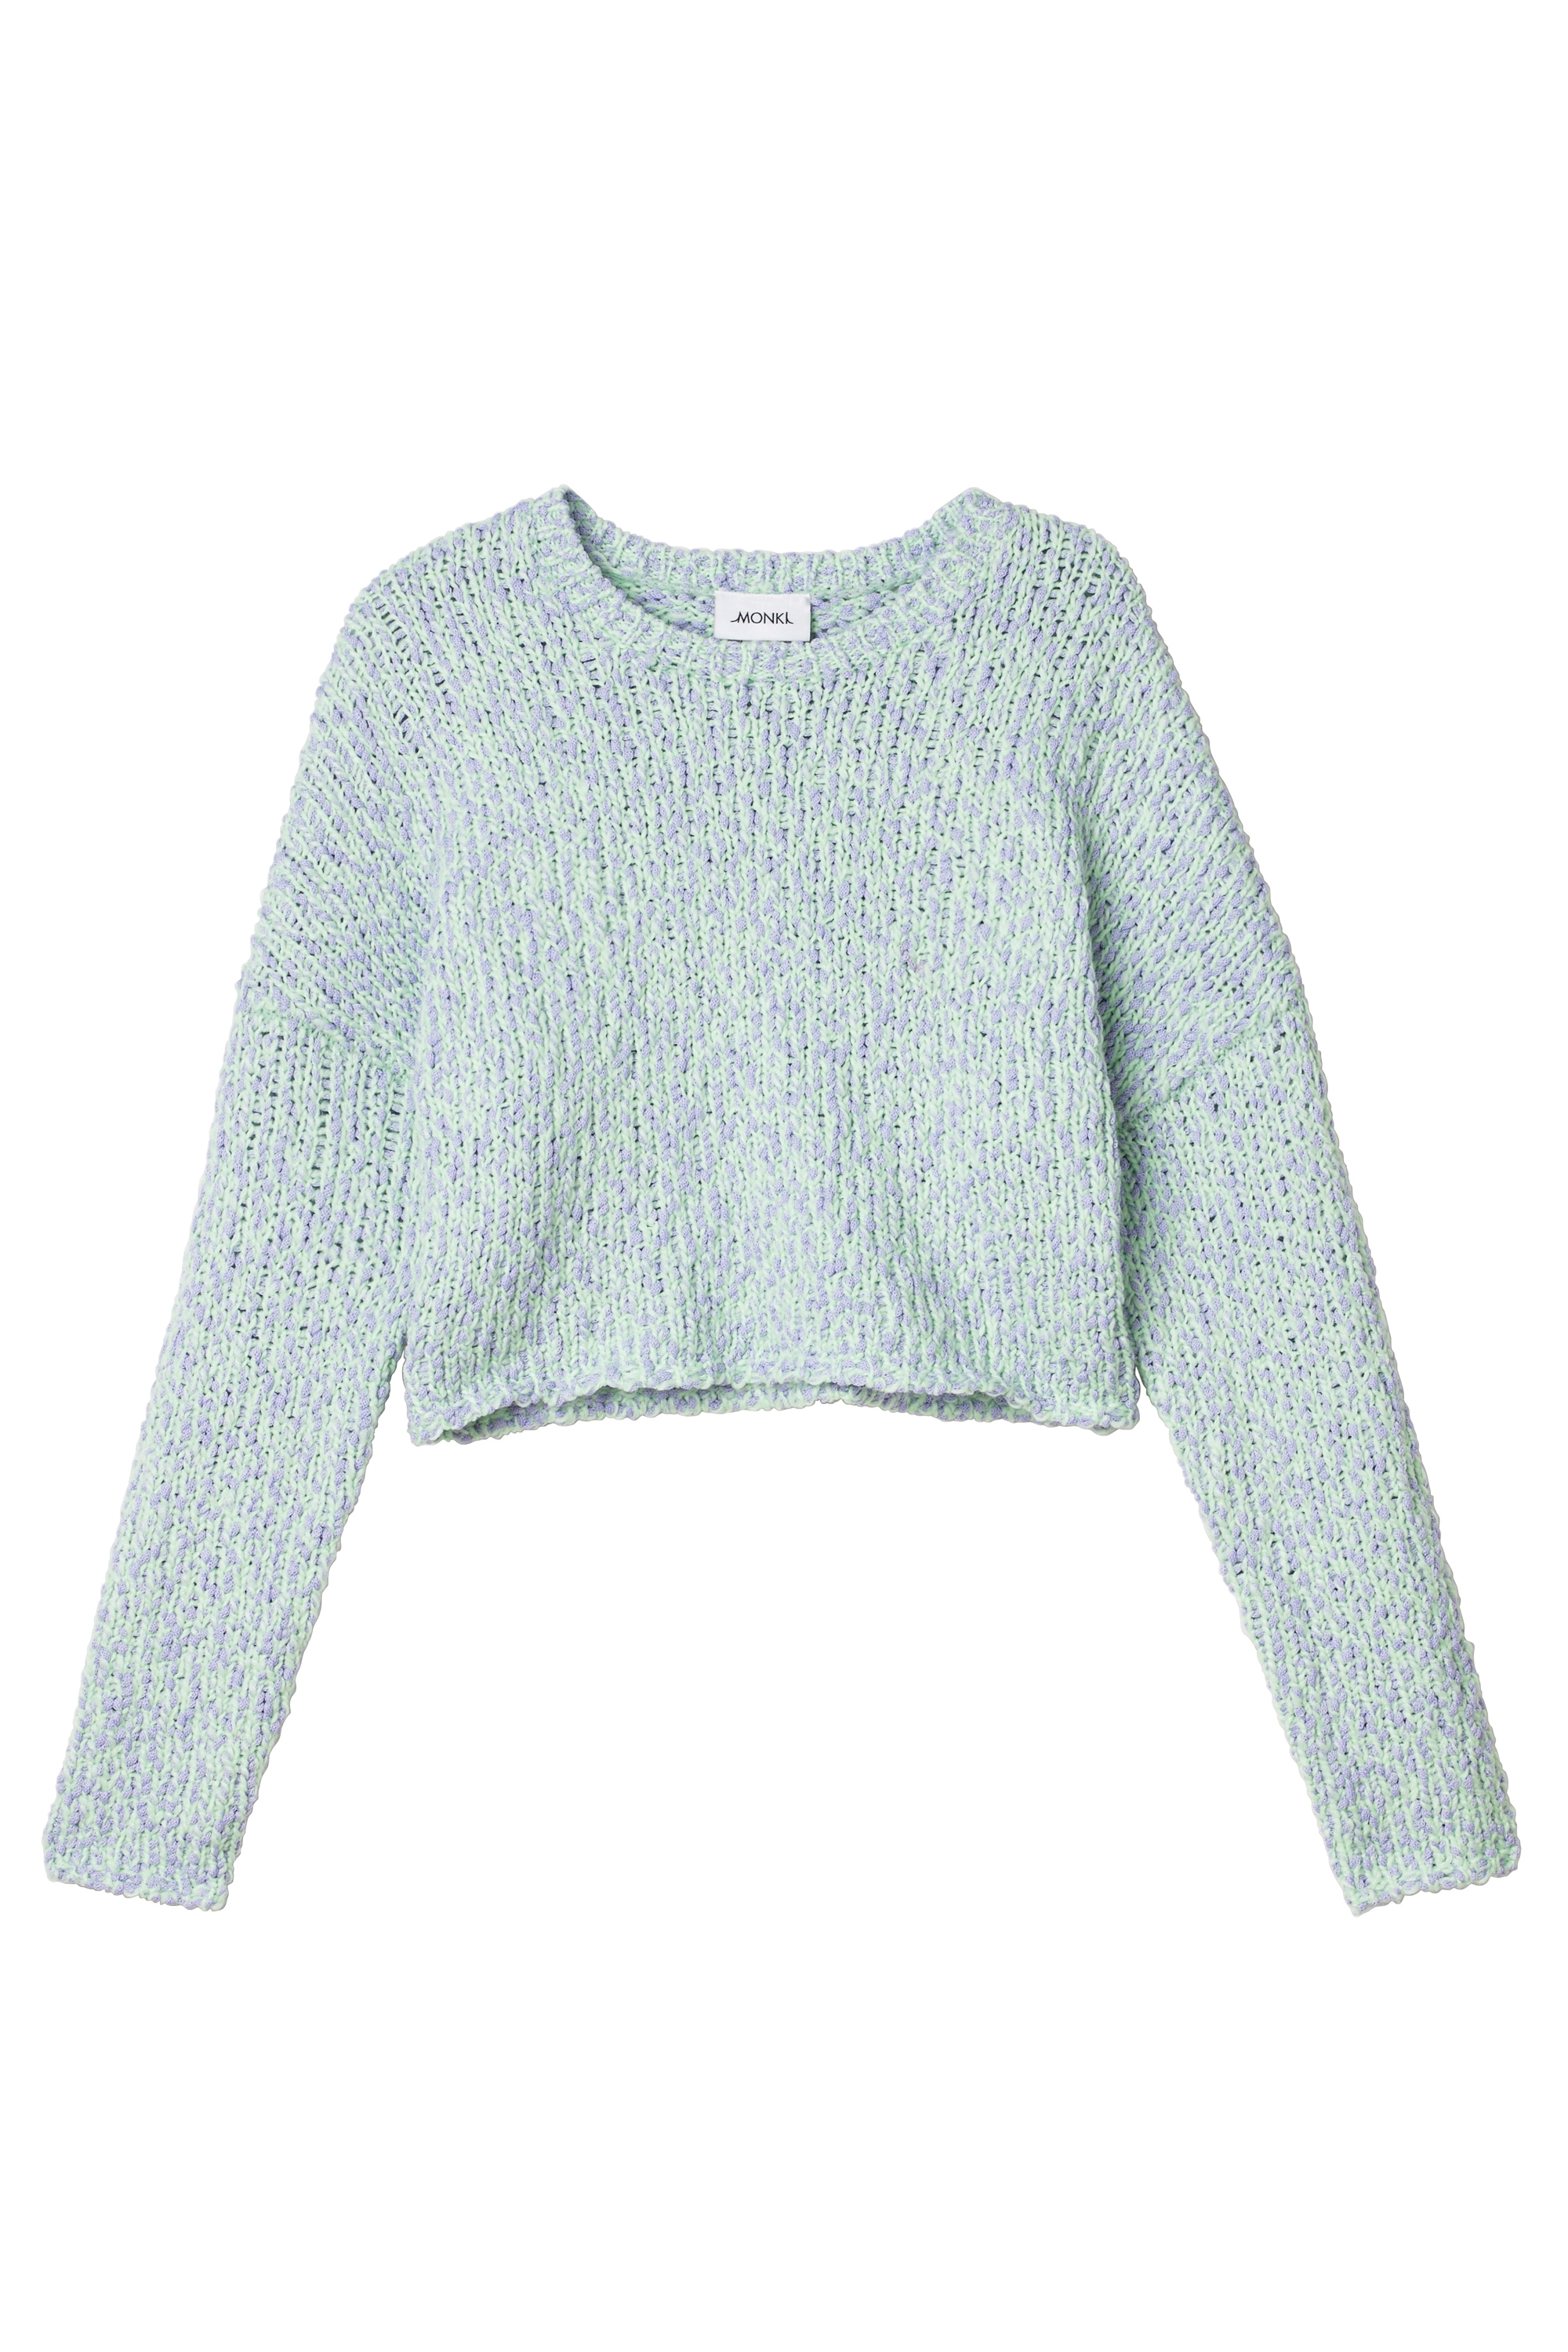 Casey knitted top | View All | Monki.com